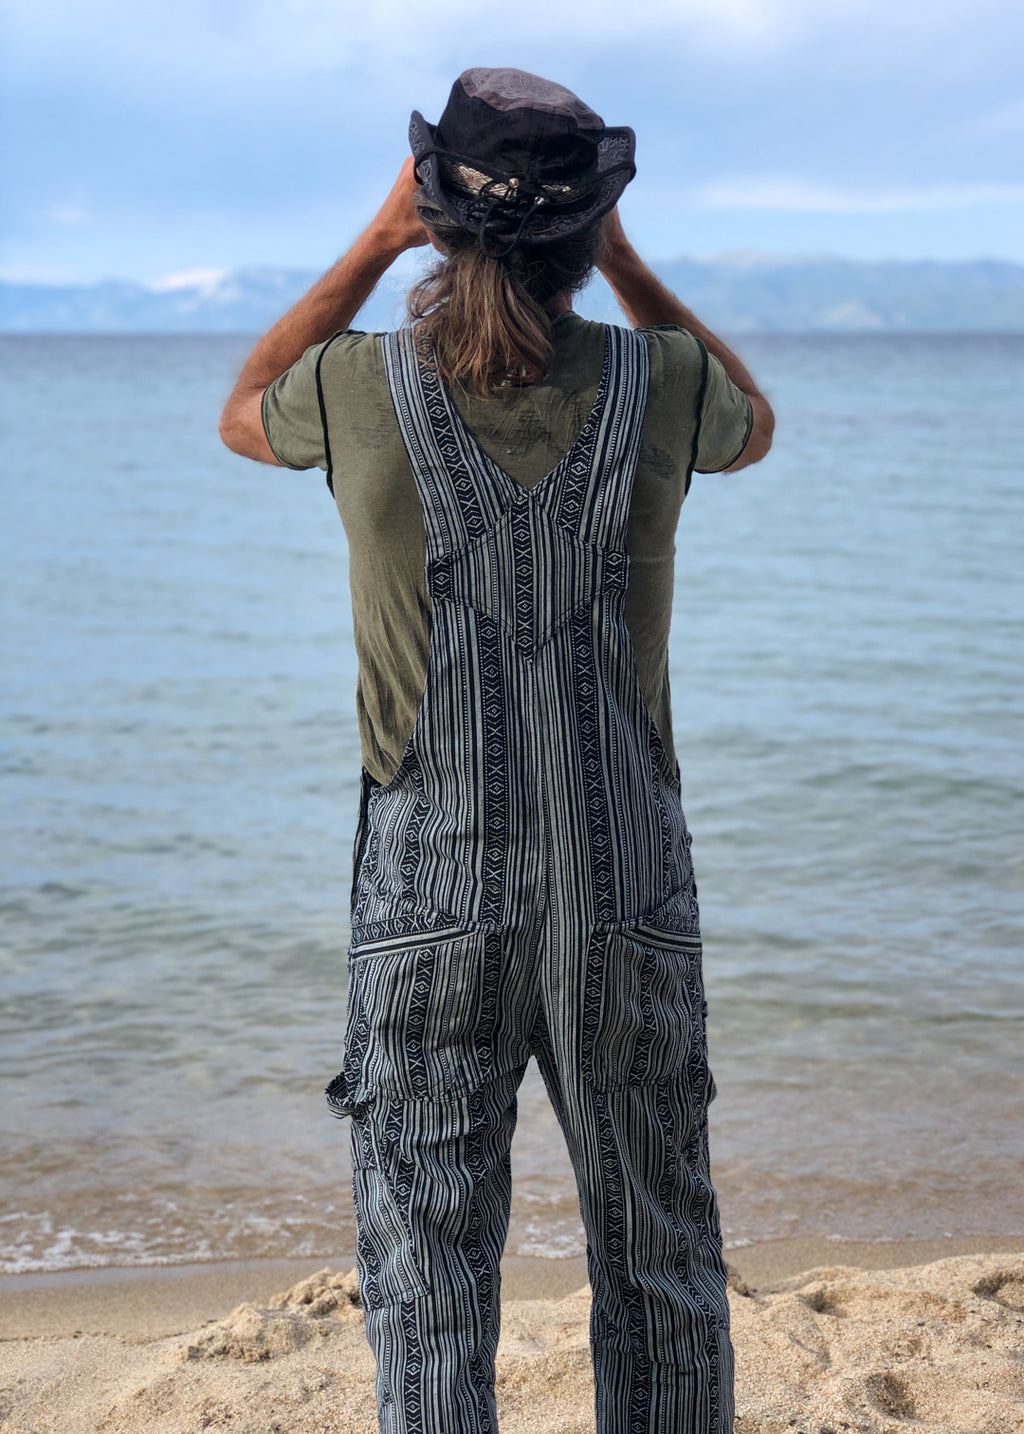 Men's OverAlls - Black/White Ikat